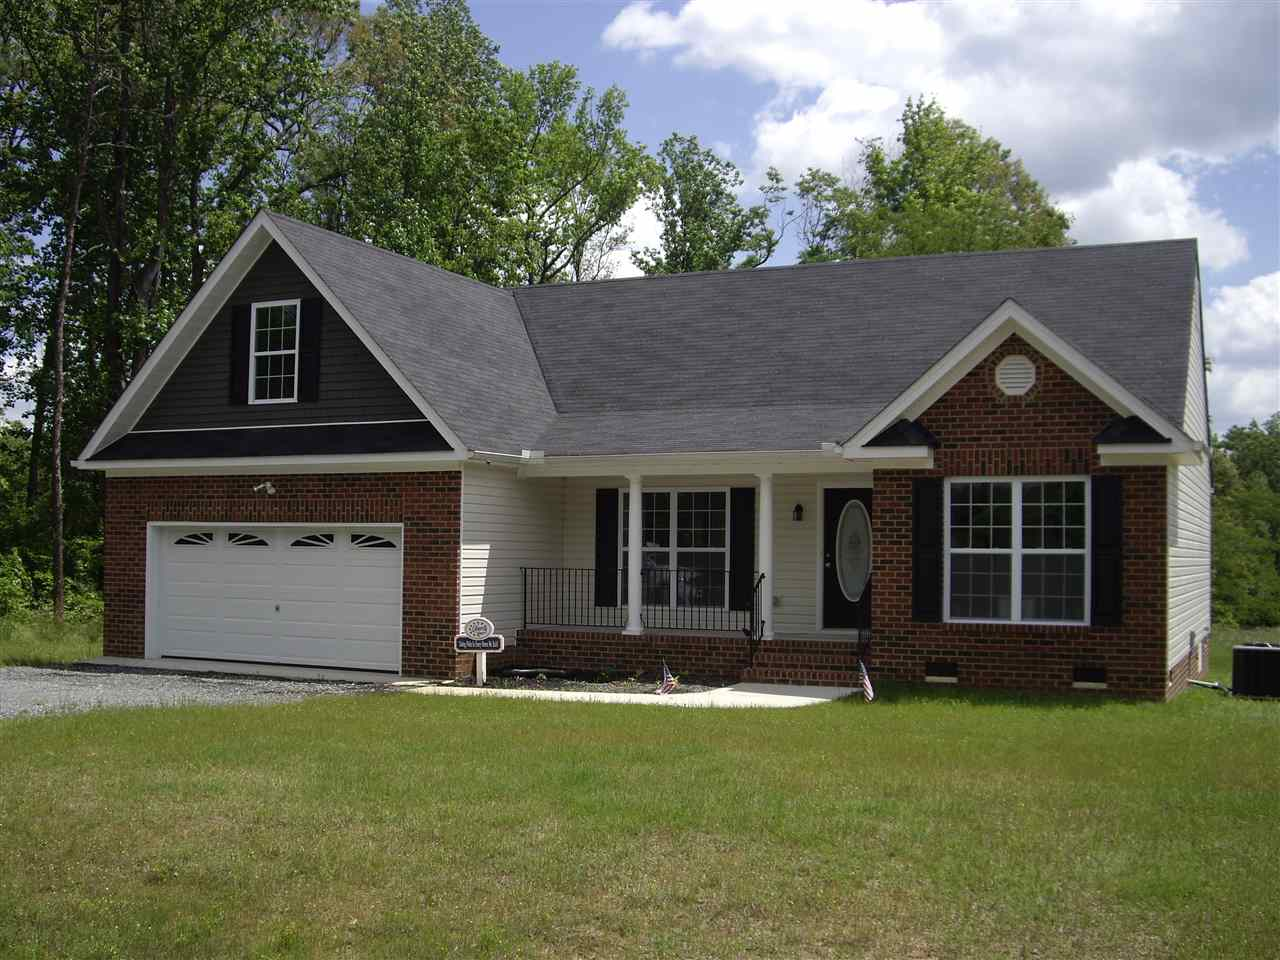 Property for sale at 14 TANGLEWOOD RD, Palmyra,  VA 22963